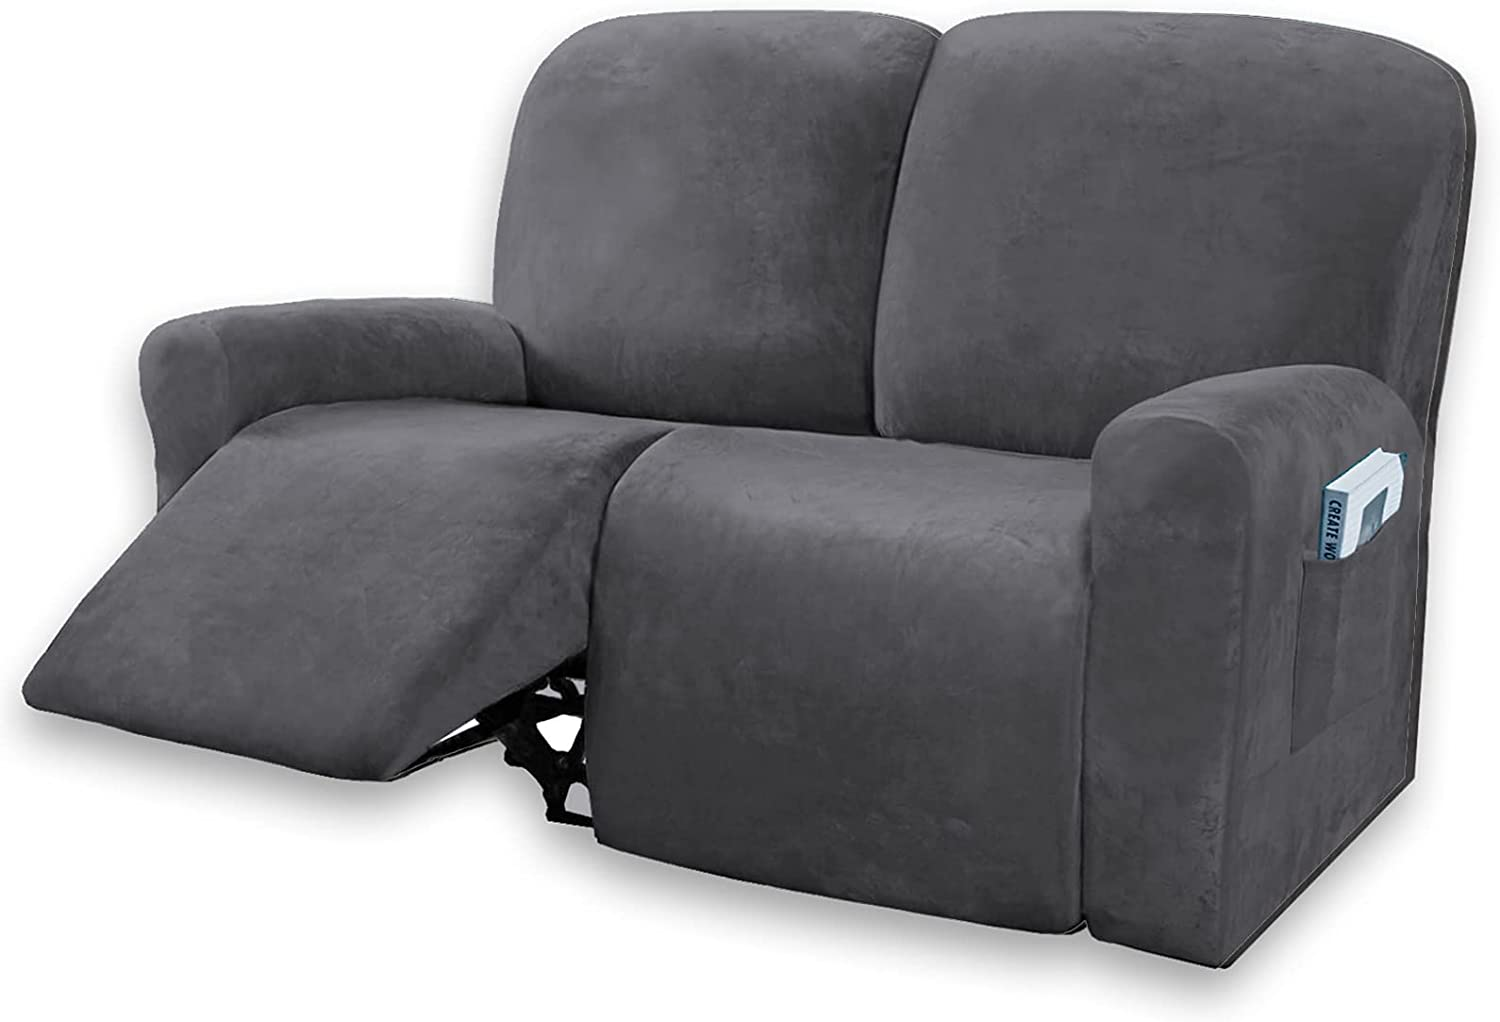 Velvet 6 Pieces Recliner Loveseat Cover, 2 Seaters Lazy Boy Reclining Furniture Protector for Kids & Pet, Non Slip Love Seat Sofa Couch Slipcover, Thick, Washable